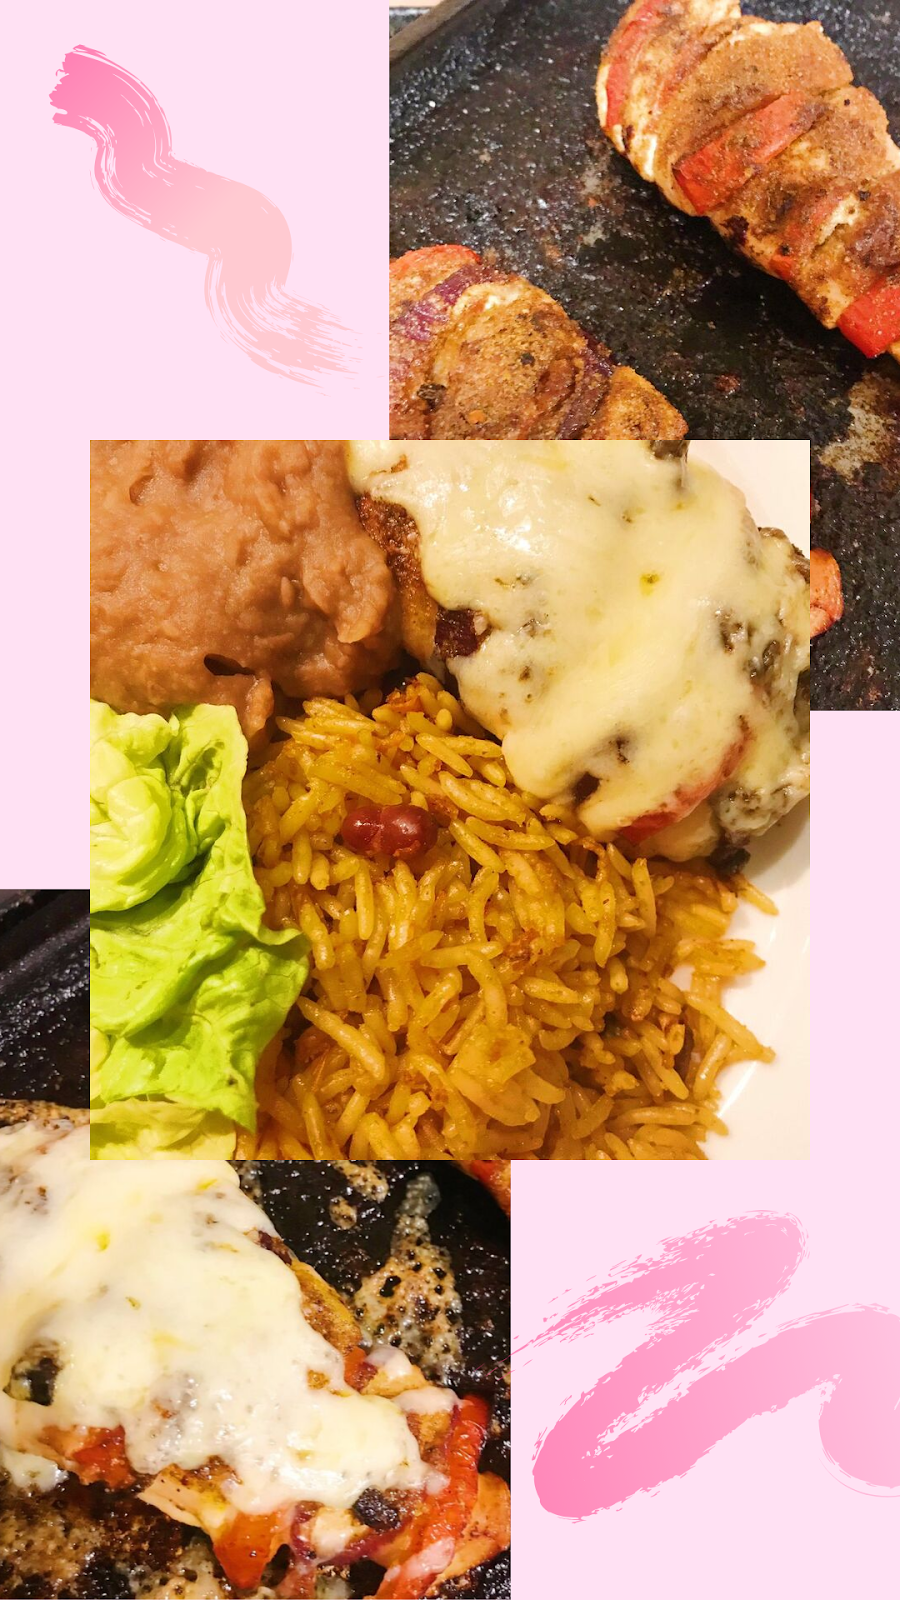 collage - chicken stuffed with onion and pepper, chicken covered in melted cheese, closeup of plate with chicken, rice, salad and refried beans